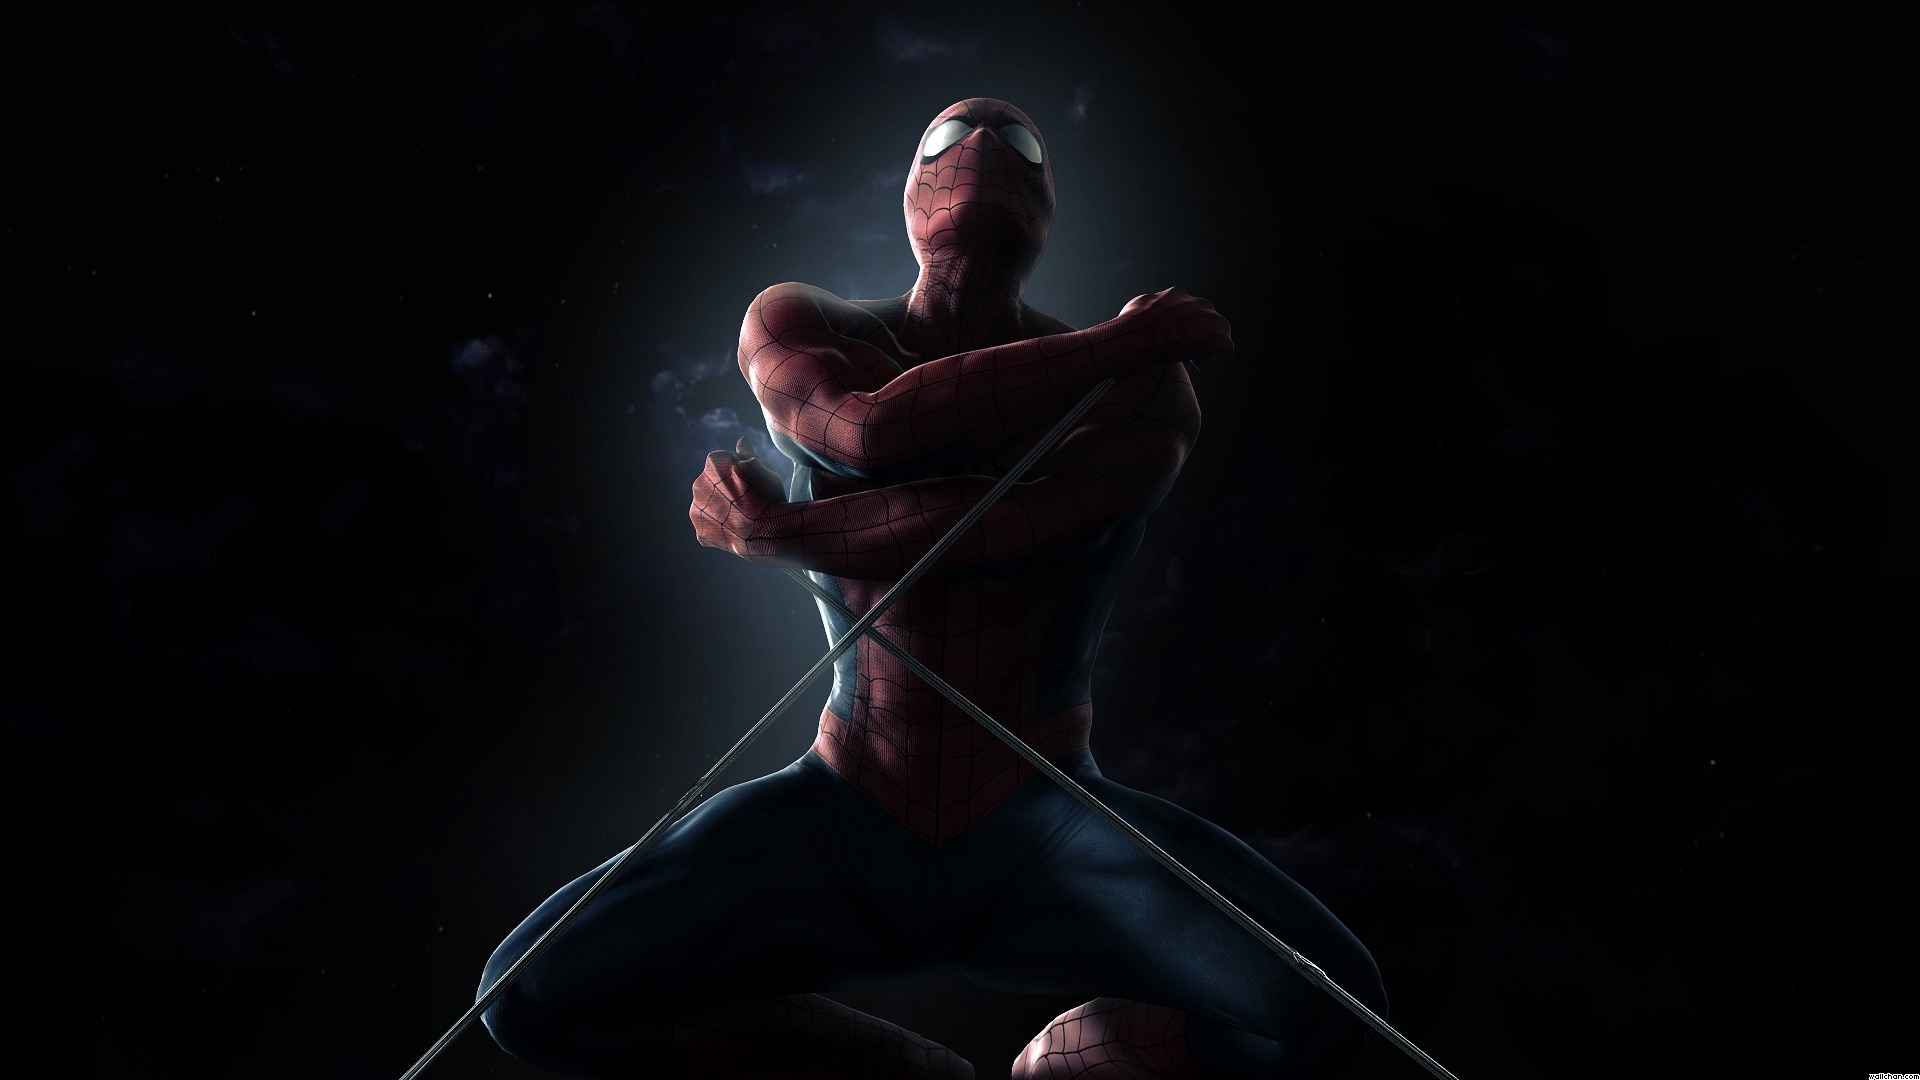 Astonishing Spiderman Wallpaper